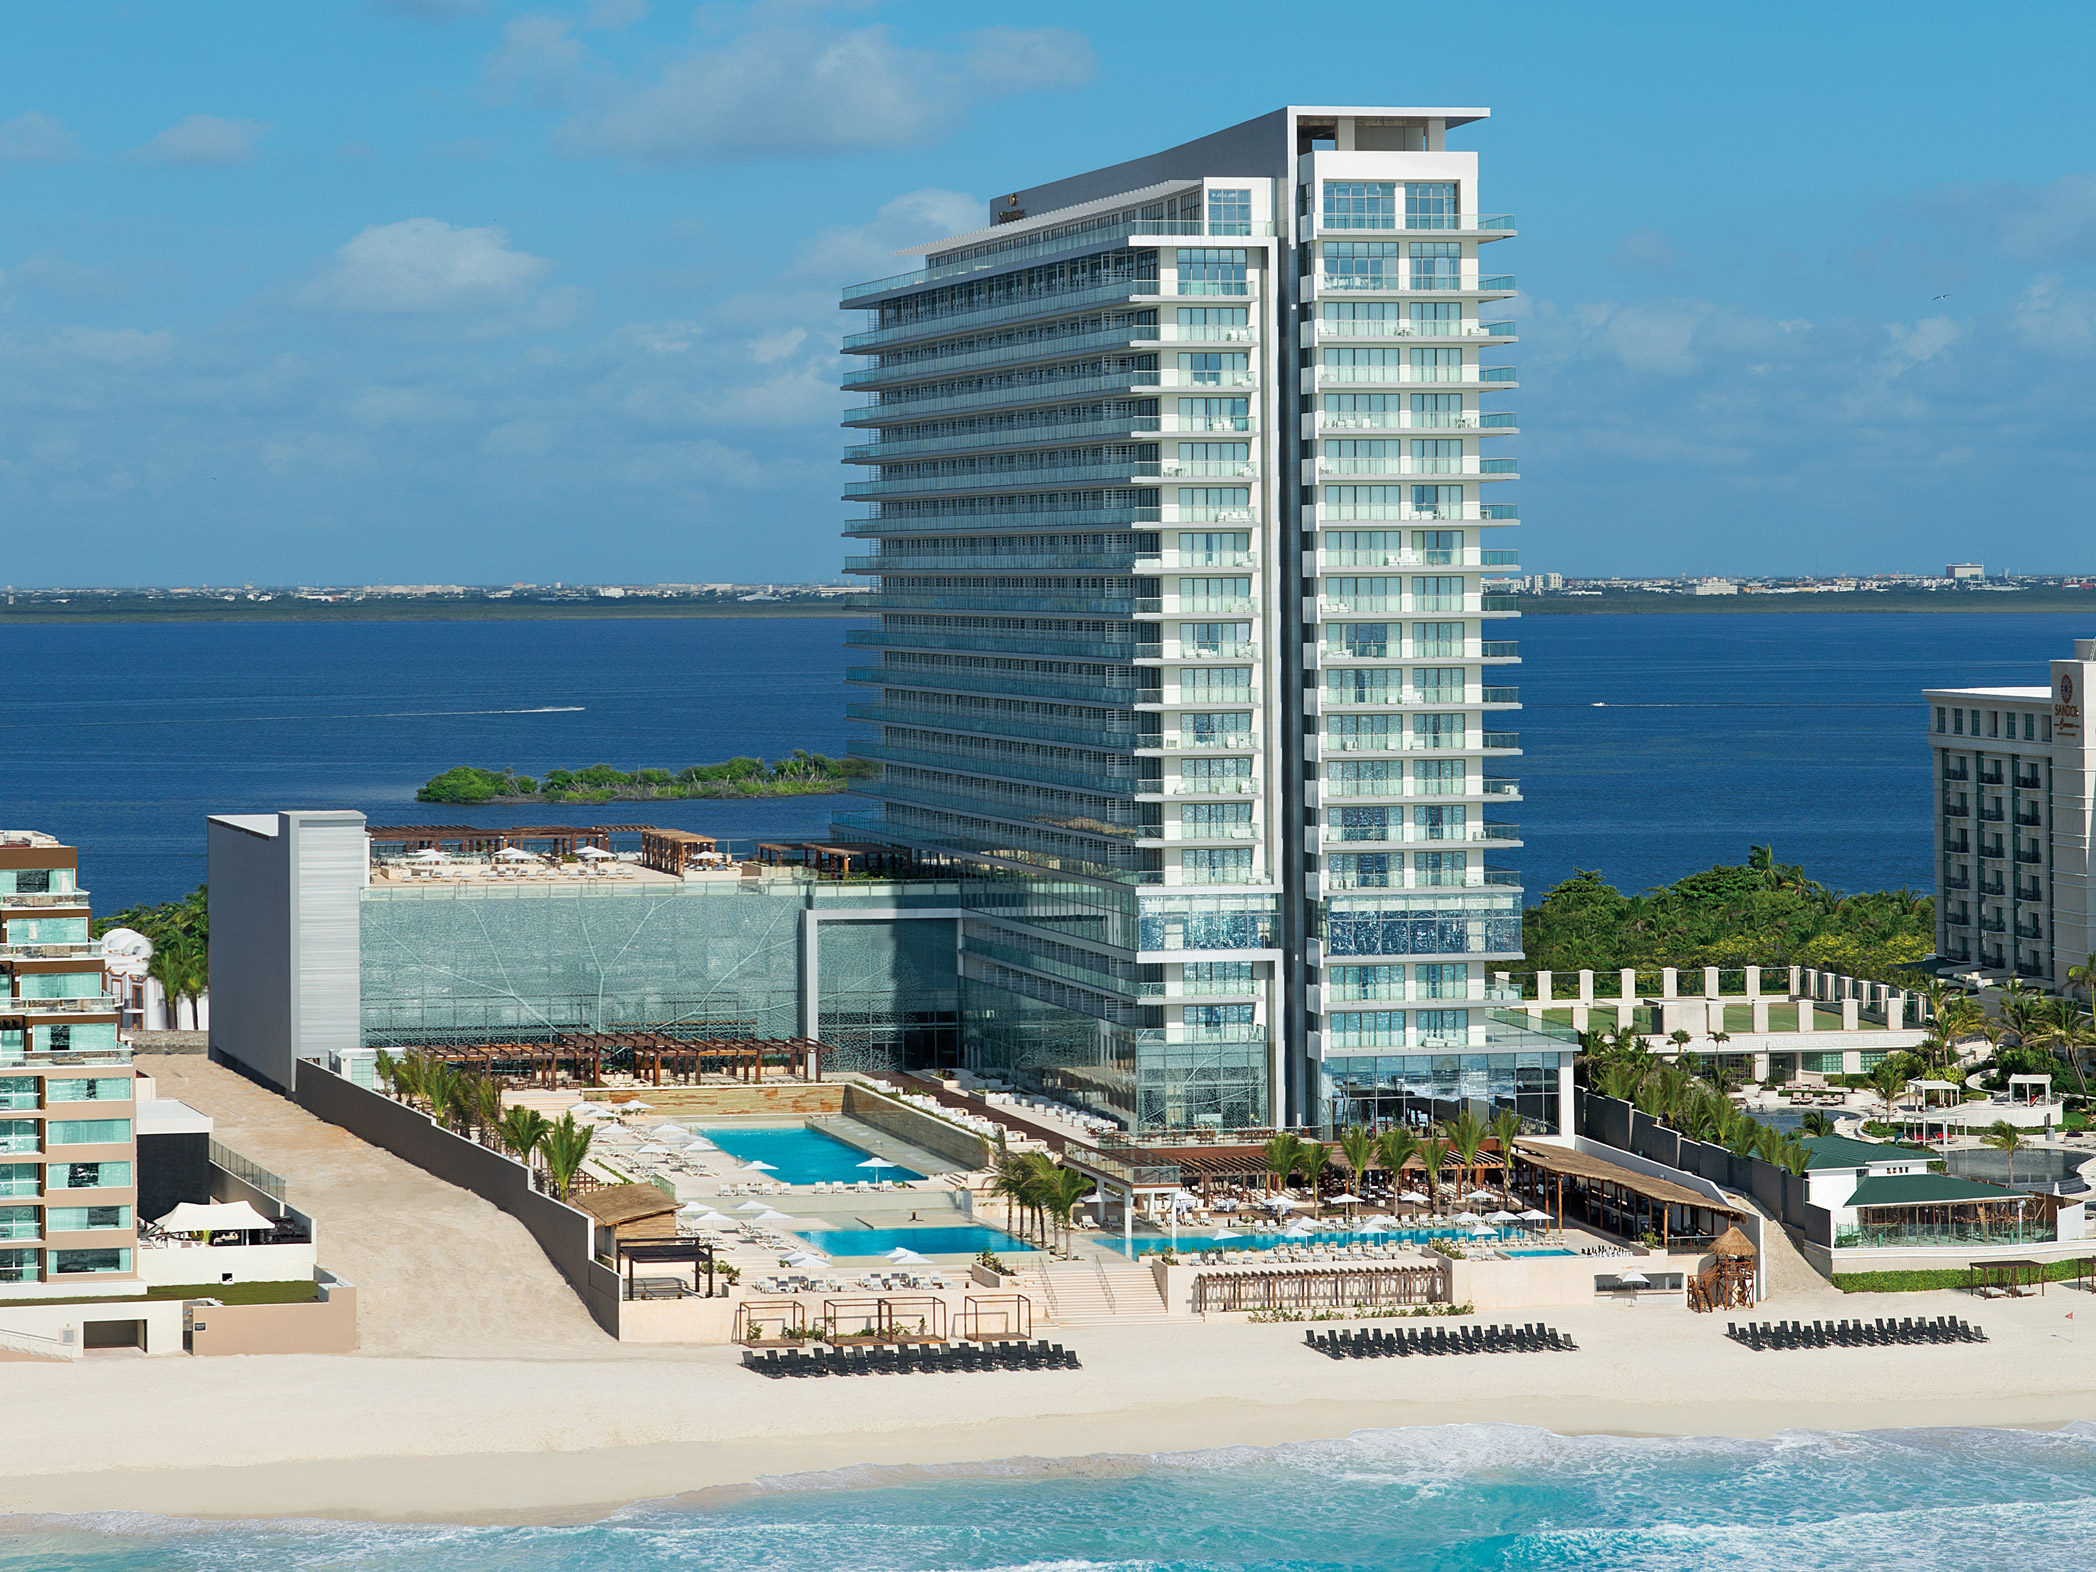 Secrets the vine cancun cancun transat for Hotels secrets